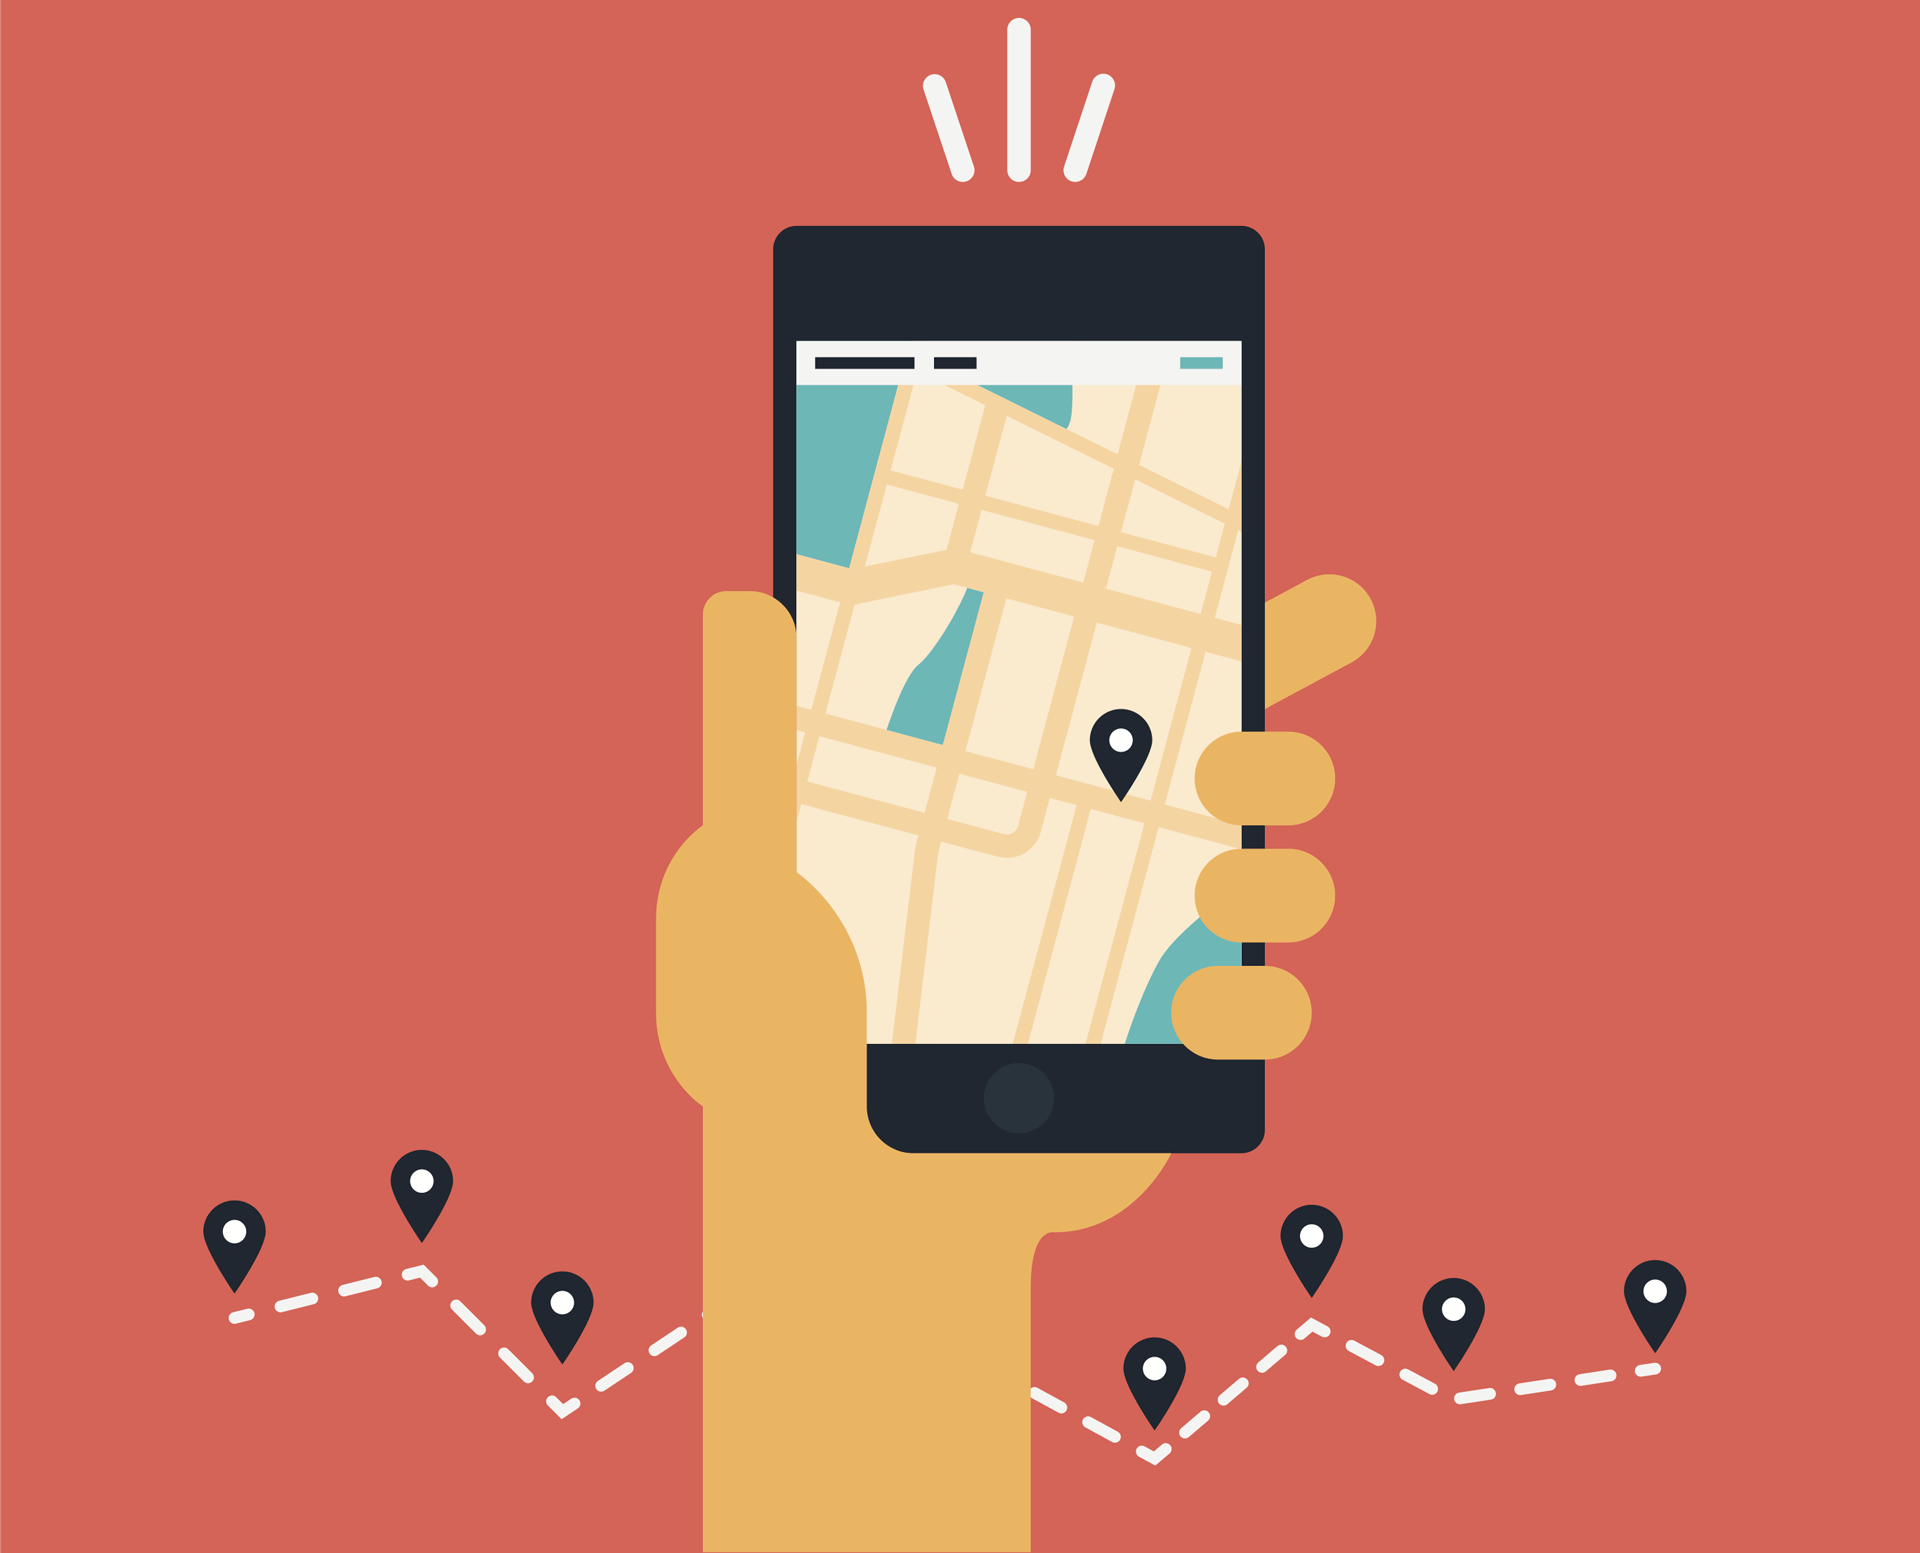 How to Track an iPhone When It is Off